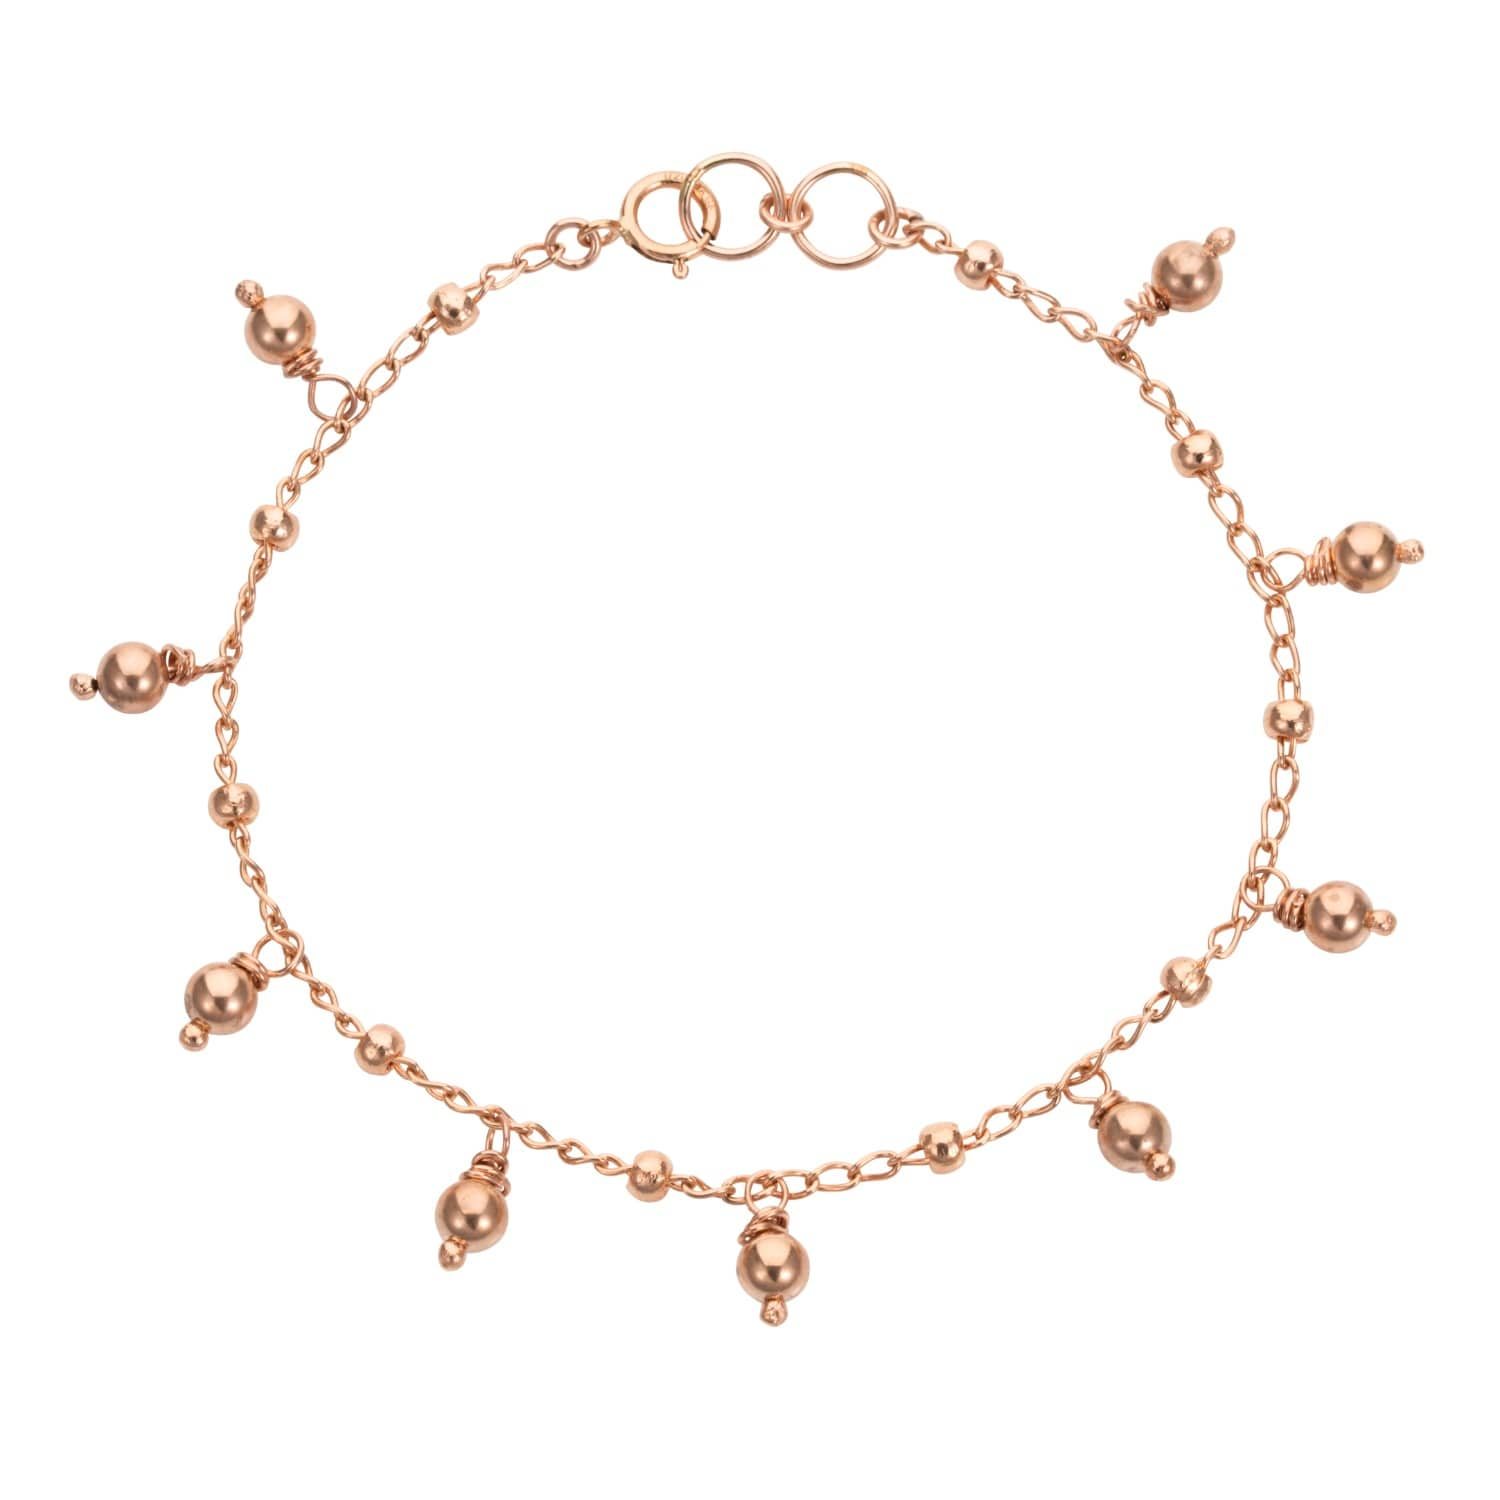 3b93fa99150f Venus Gold Chain Bracelet With Gold Beads | Amadeus | Wolf & Badger